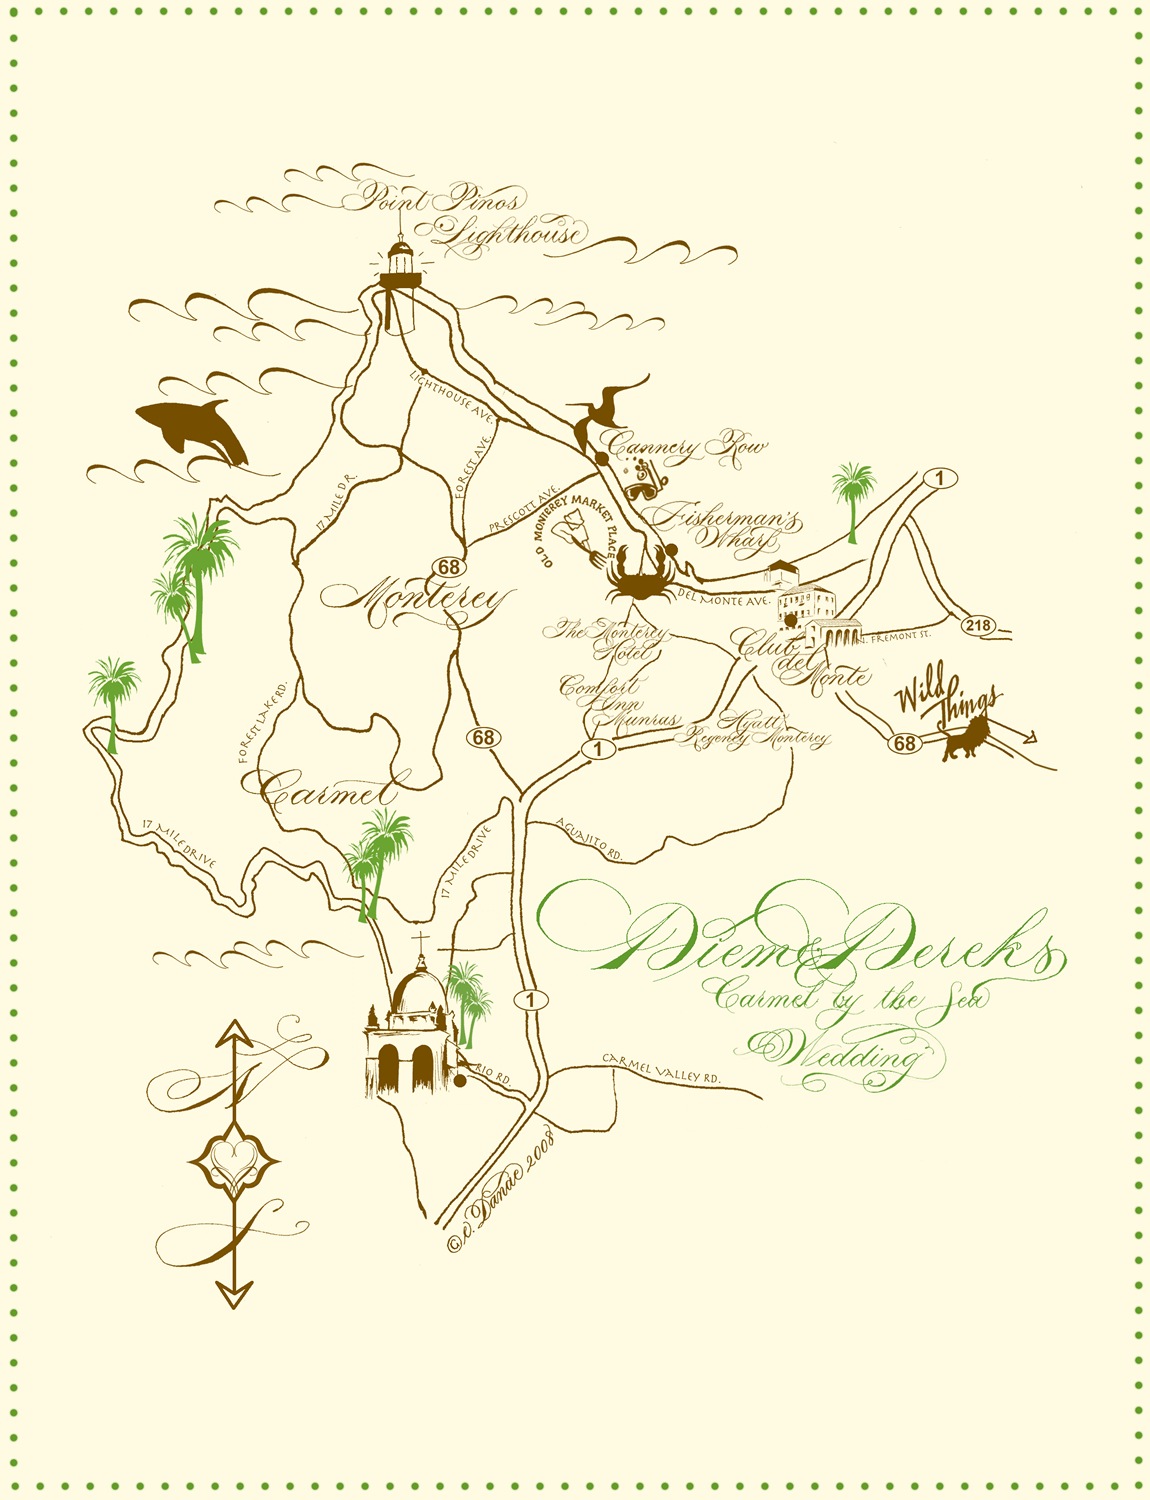 Map, E danae art calligraphy